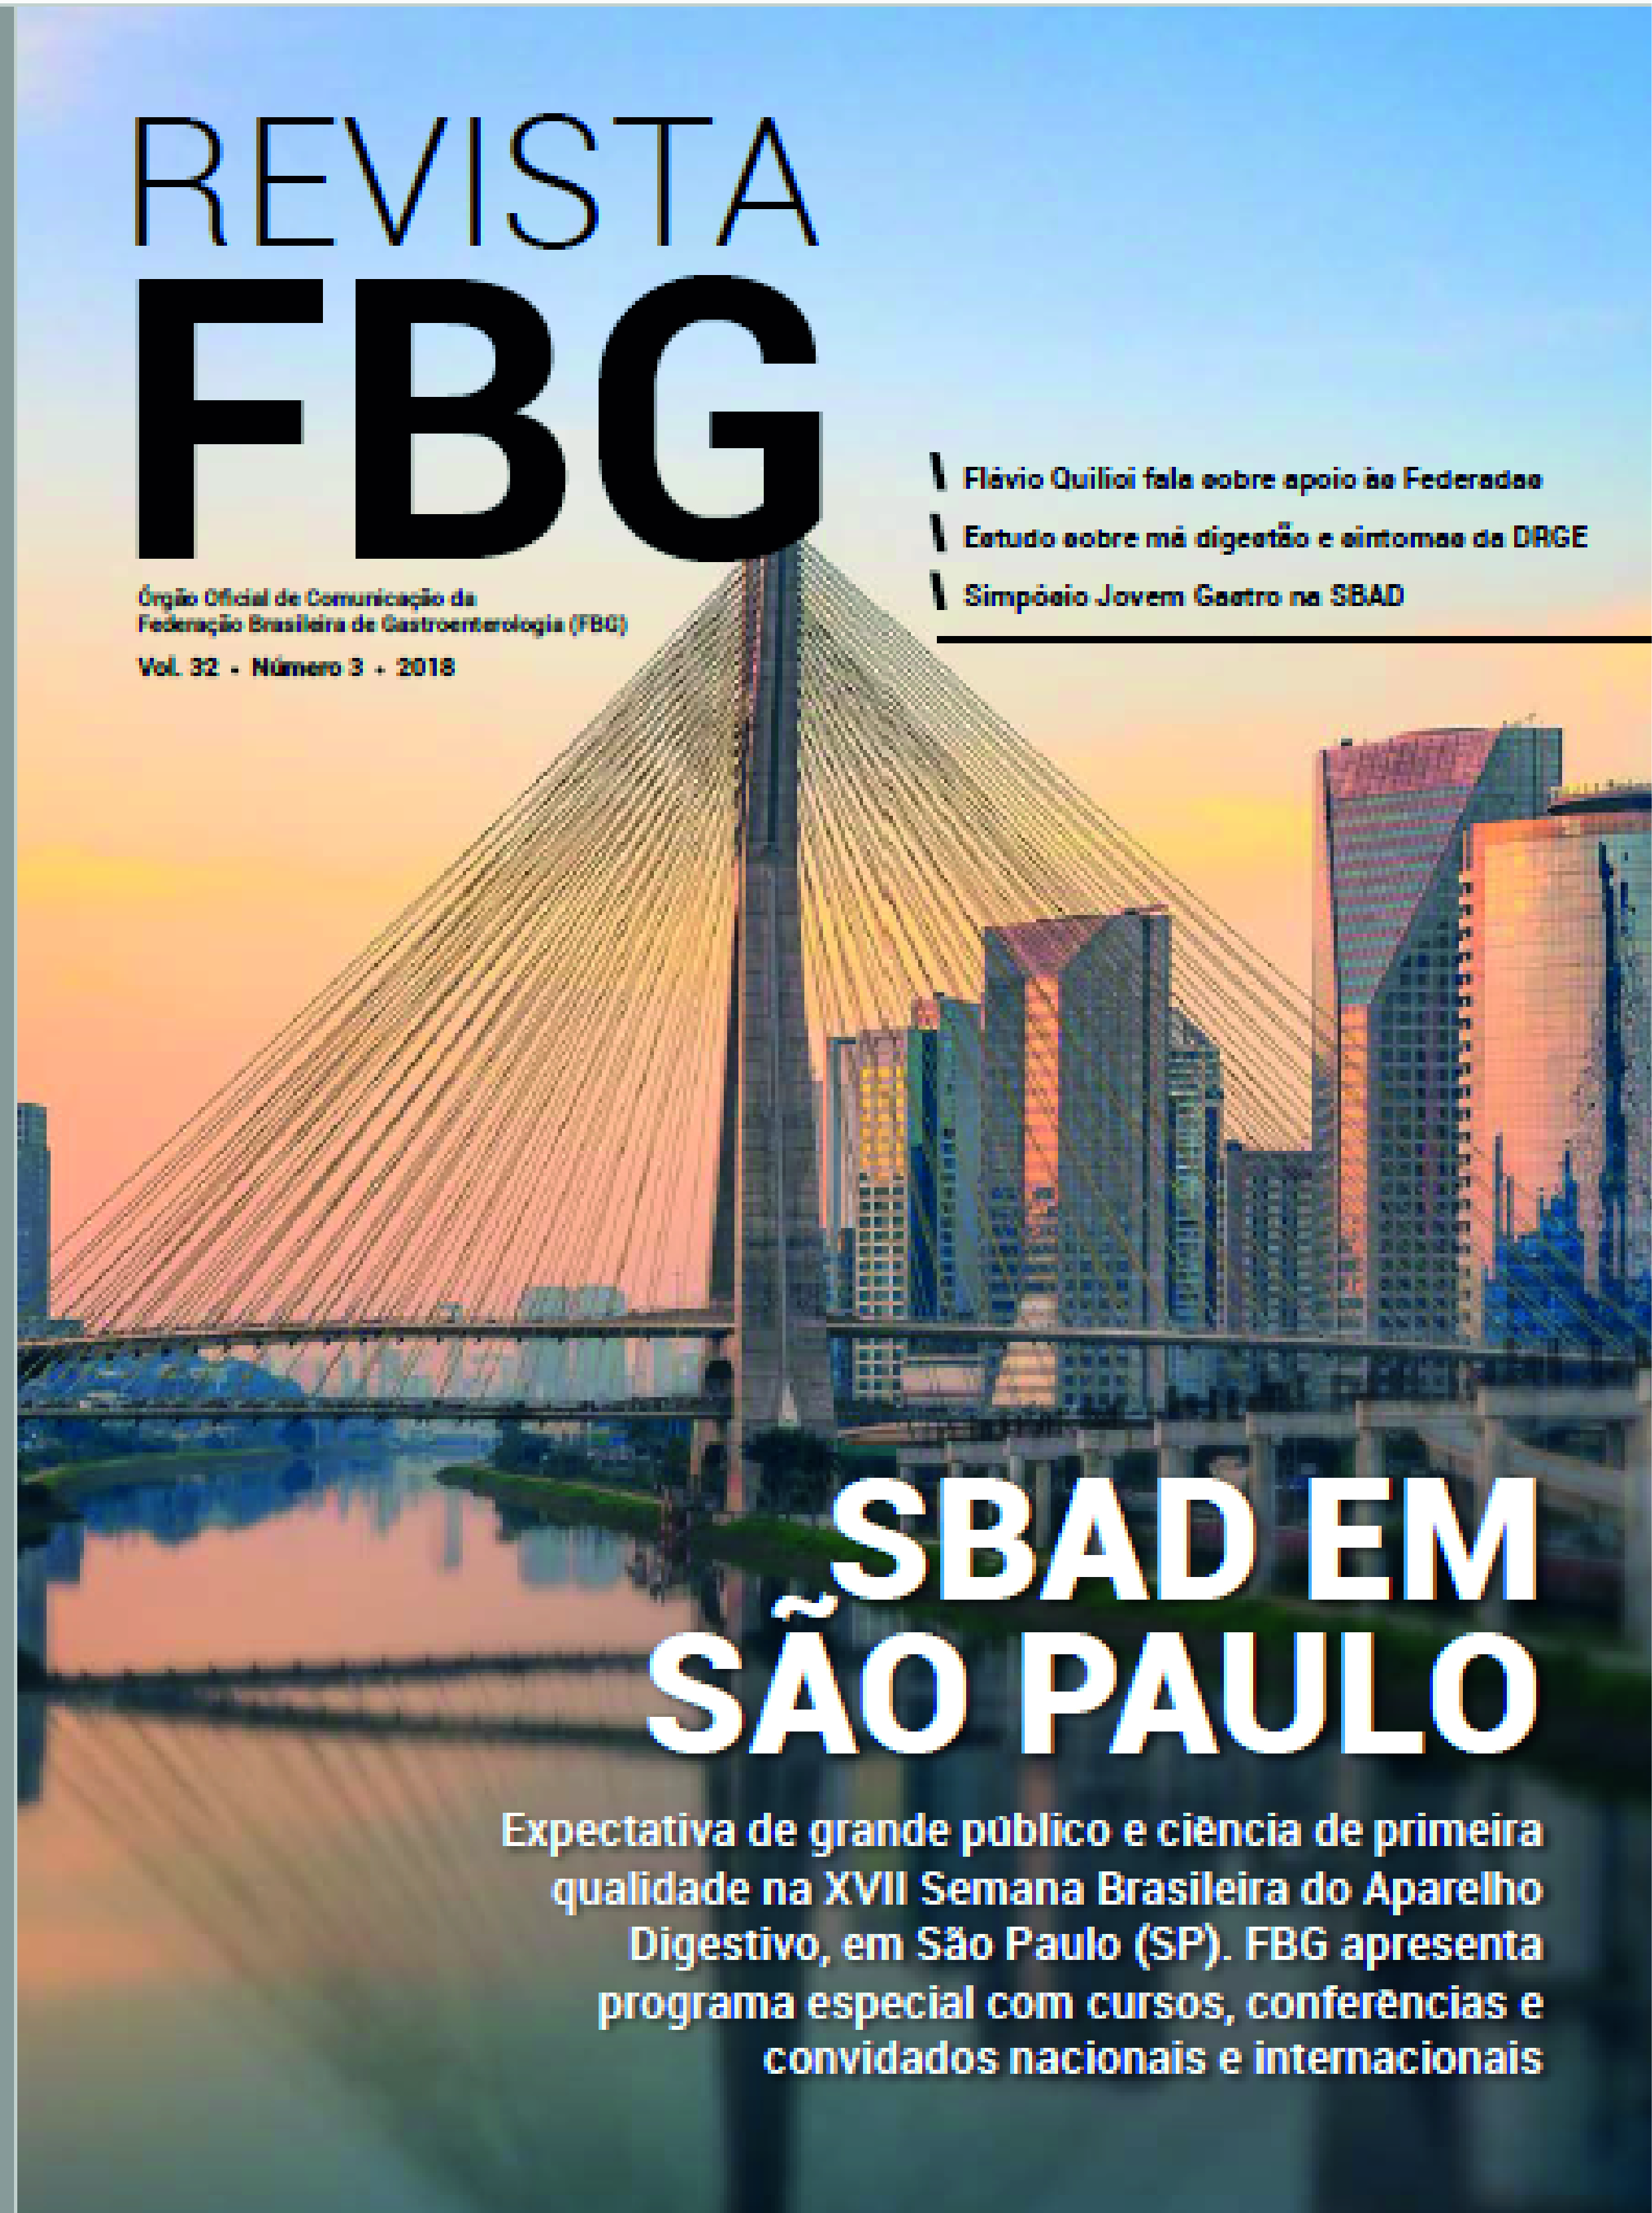 Revista FBG Vol. 32 Nº 3 - 2018